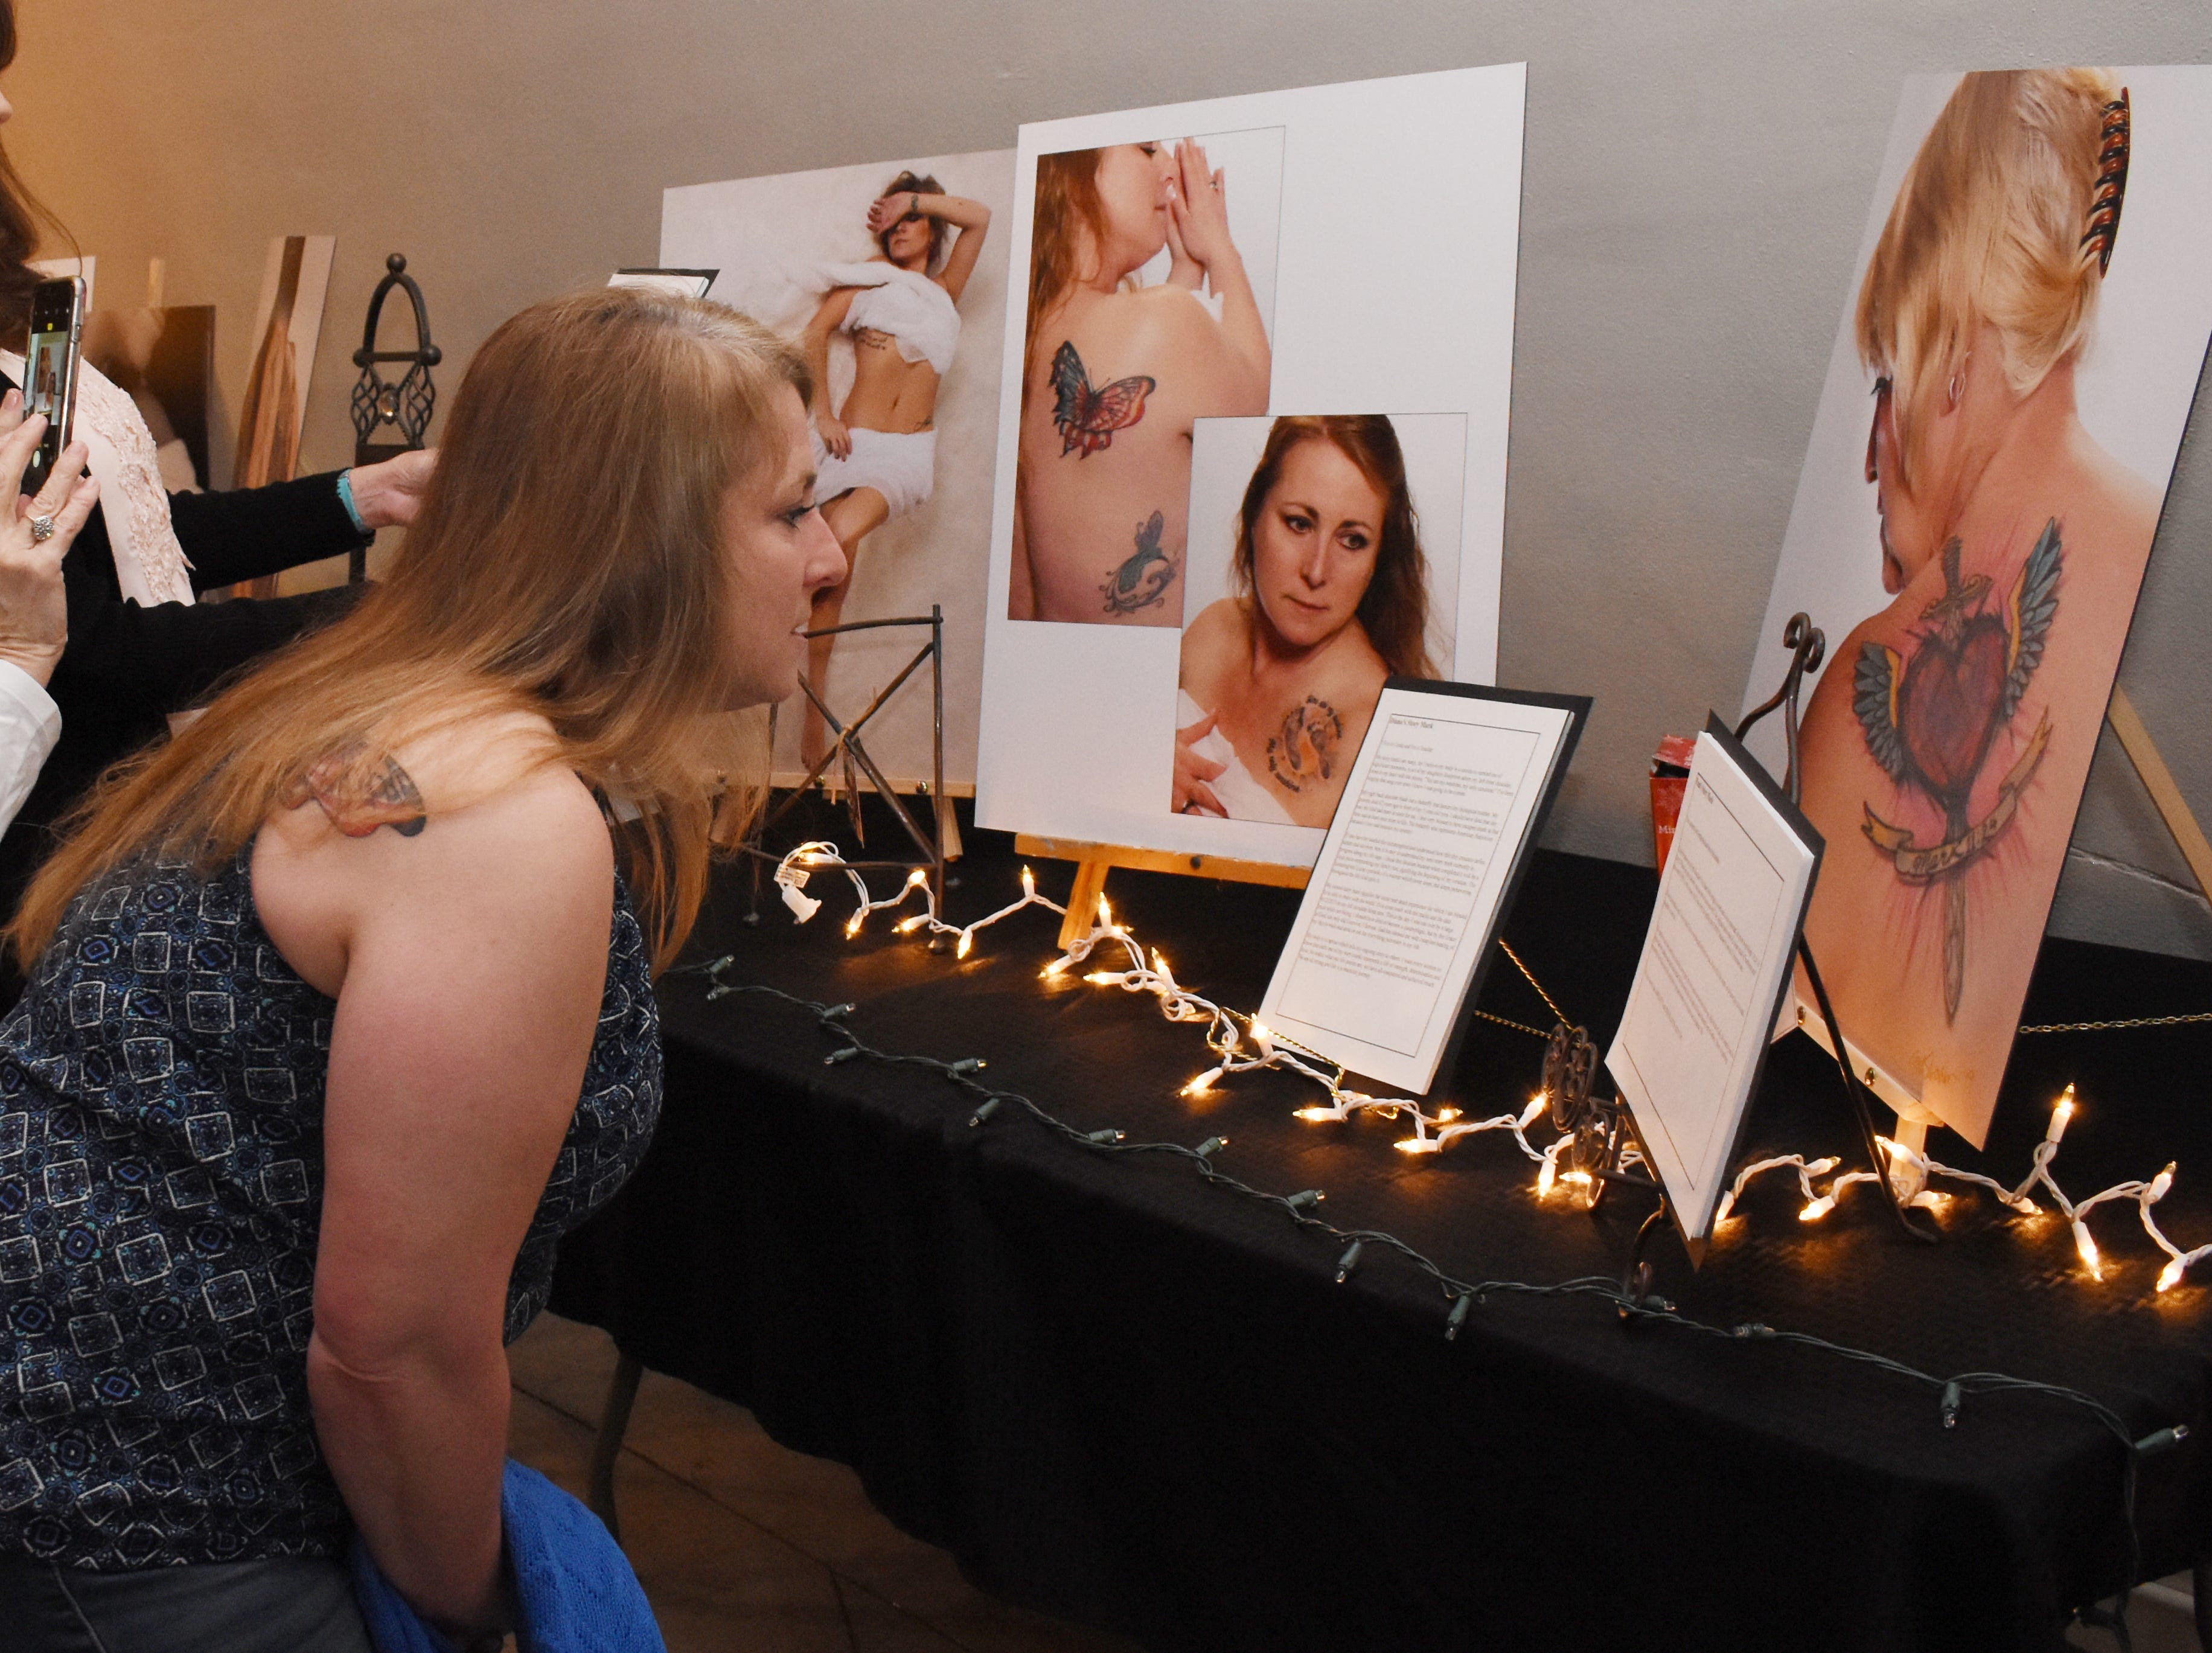 """Diane DeWeese was one of the local women photographed for a project called """"Story Marks."""" An event highlighting the project and women who have tattoos and the stories behind them was held Friday, Feb. 1, 2019 at Willowbench Meeting Place in Pineville.""""We've recruited 18 women and their stories behind their tattoos,"""" said Belle Chatelain, one of the event organizers. Chatelain said Story Marks is a division of Stonecroft, a non-profit ministry. """"These are events that have been around the nation for the last - probably three years,"""" explained Chatelain. """"They've been  in about 30 states. And we're the first to bring one to Louisiana.""""The women and their tattoos were photographed by local photographer Susan Merritt Stevison. The photographs of the women, the tattoos and their stories were on display.""""We've been planning this for months,"""" said Chatelain. The event is about building community, crossing cultural, religious denominations, socioeconomic differences and boundaries, she explained.""""To bring women together because we are a community of women and our message is that your story matters,"""" she added. """"That every woman has a story. We come together and share our stories we'll see how much we have in common versus how much that we're different.""""The event emcee, Wendi Bryant, is leading a community group call Themes at the Rapides Parish Library on Wednesday nights for four weeks to teach women how to write their life story.Molly Townsend dcoumented Friday's event. Tammie Thames, owner of Willowbench, donated the meeting space for the event."""